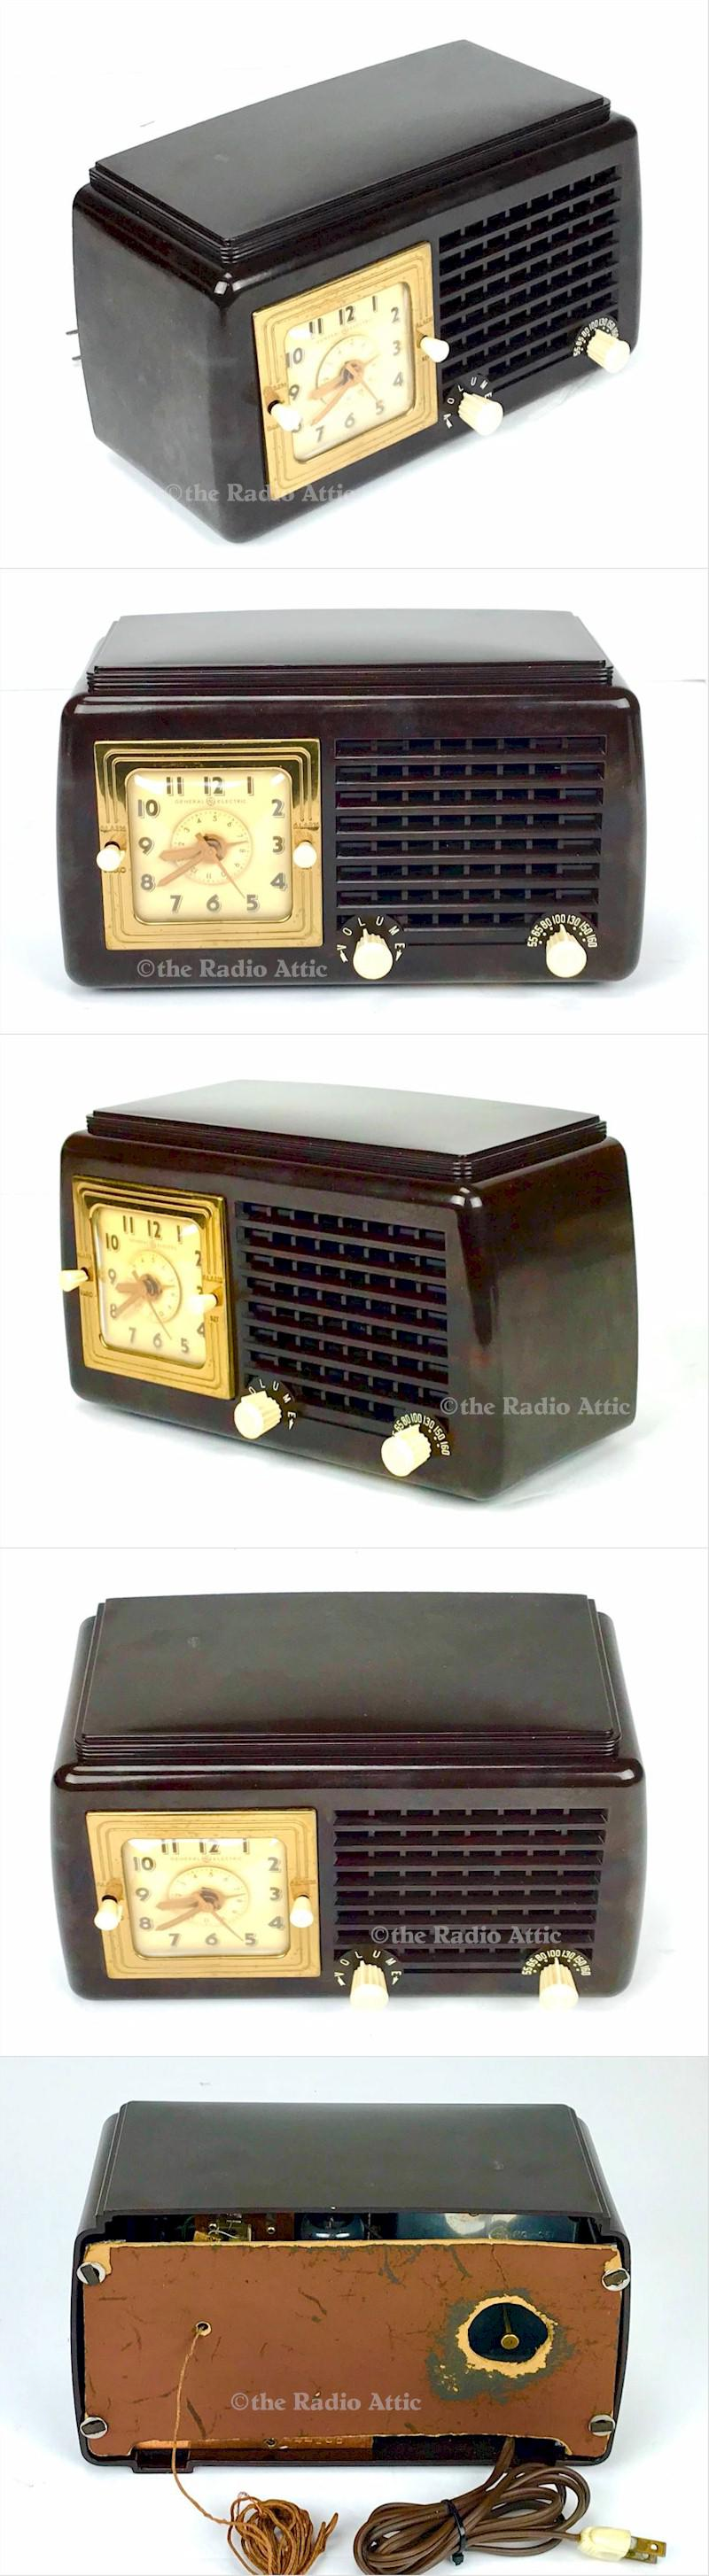 General Electric 50 Clock Radio (1947)